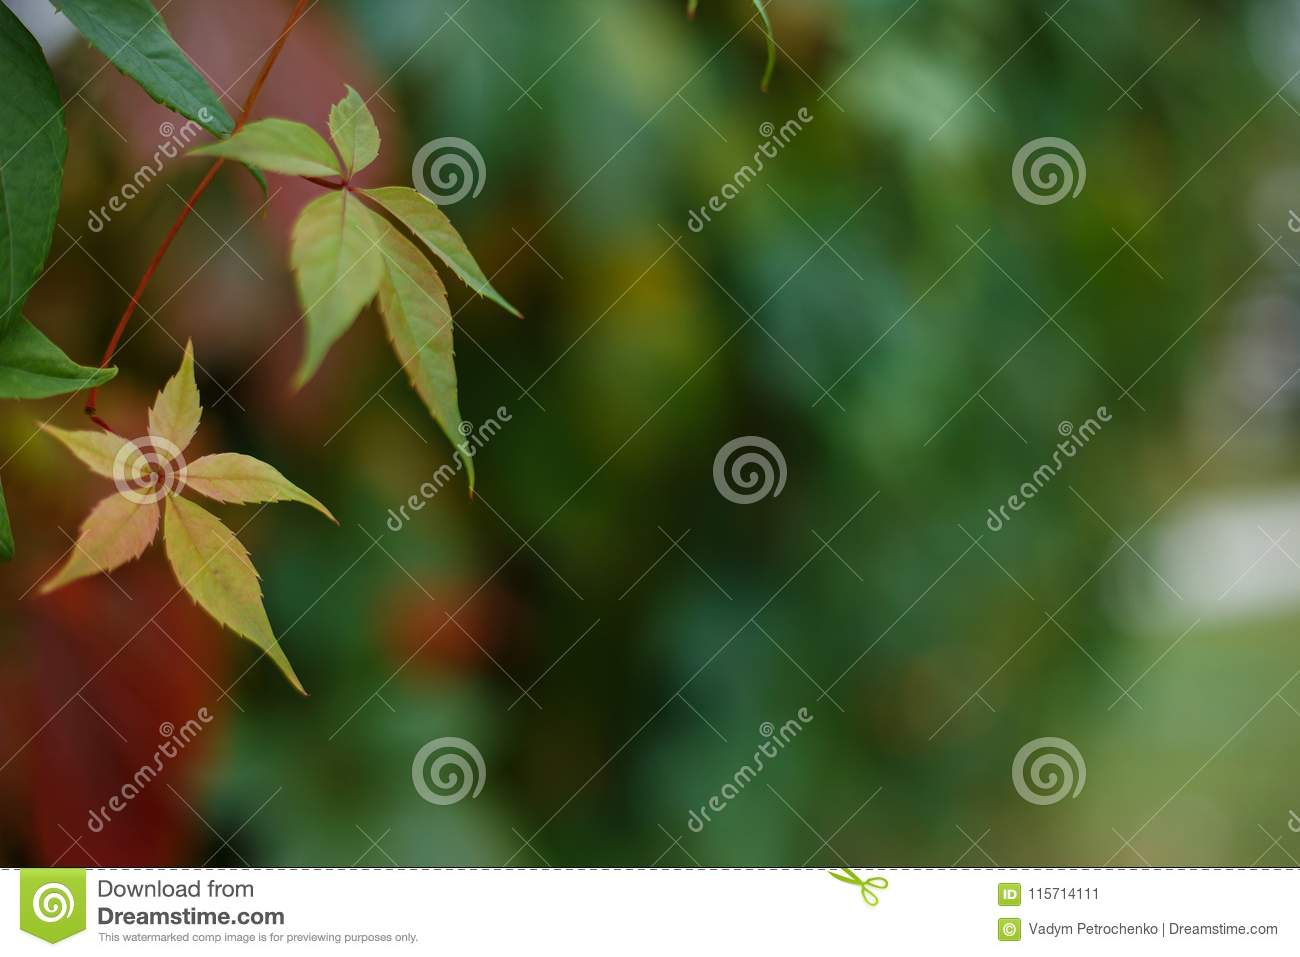 Botanical, nature, gardening background. Autumn leaves picture w